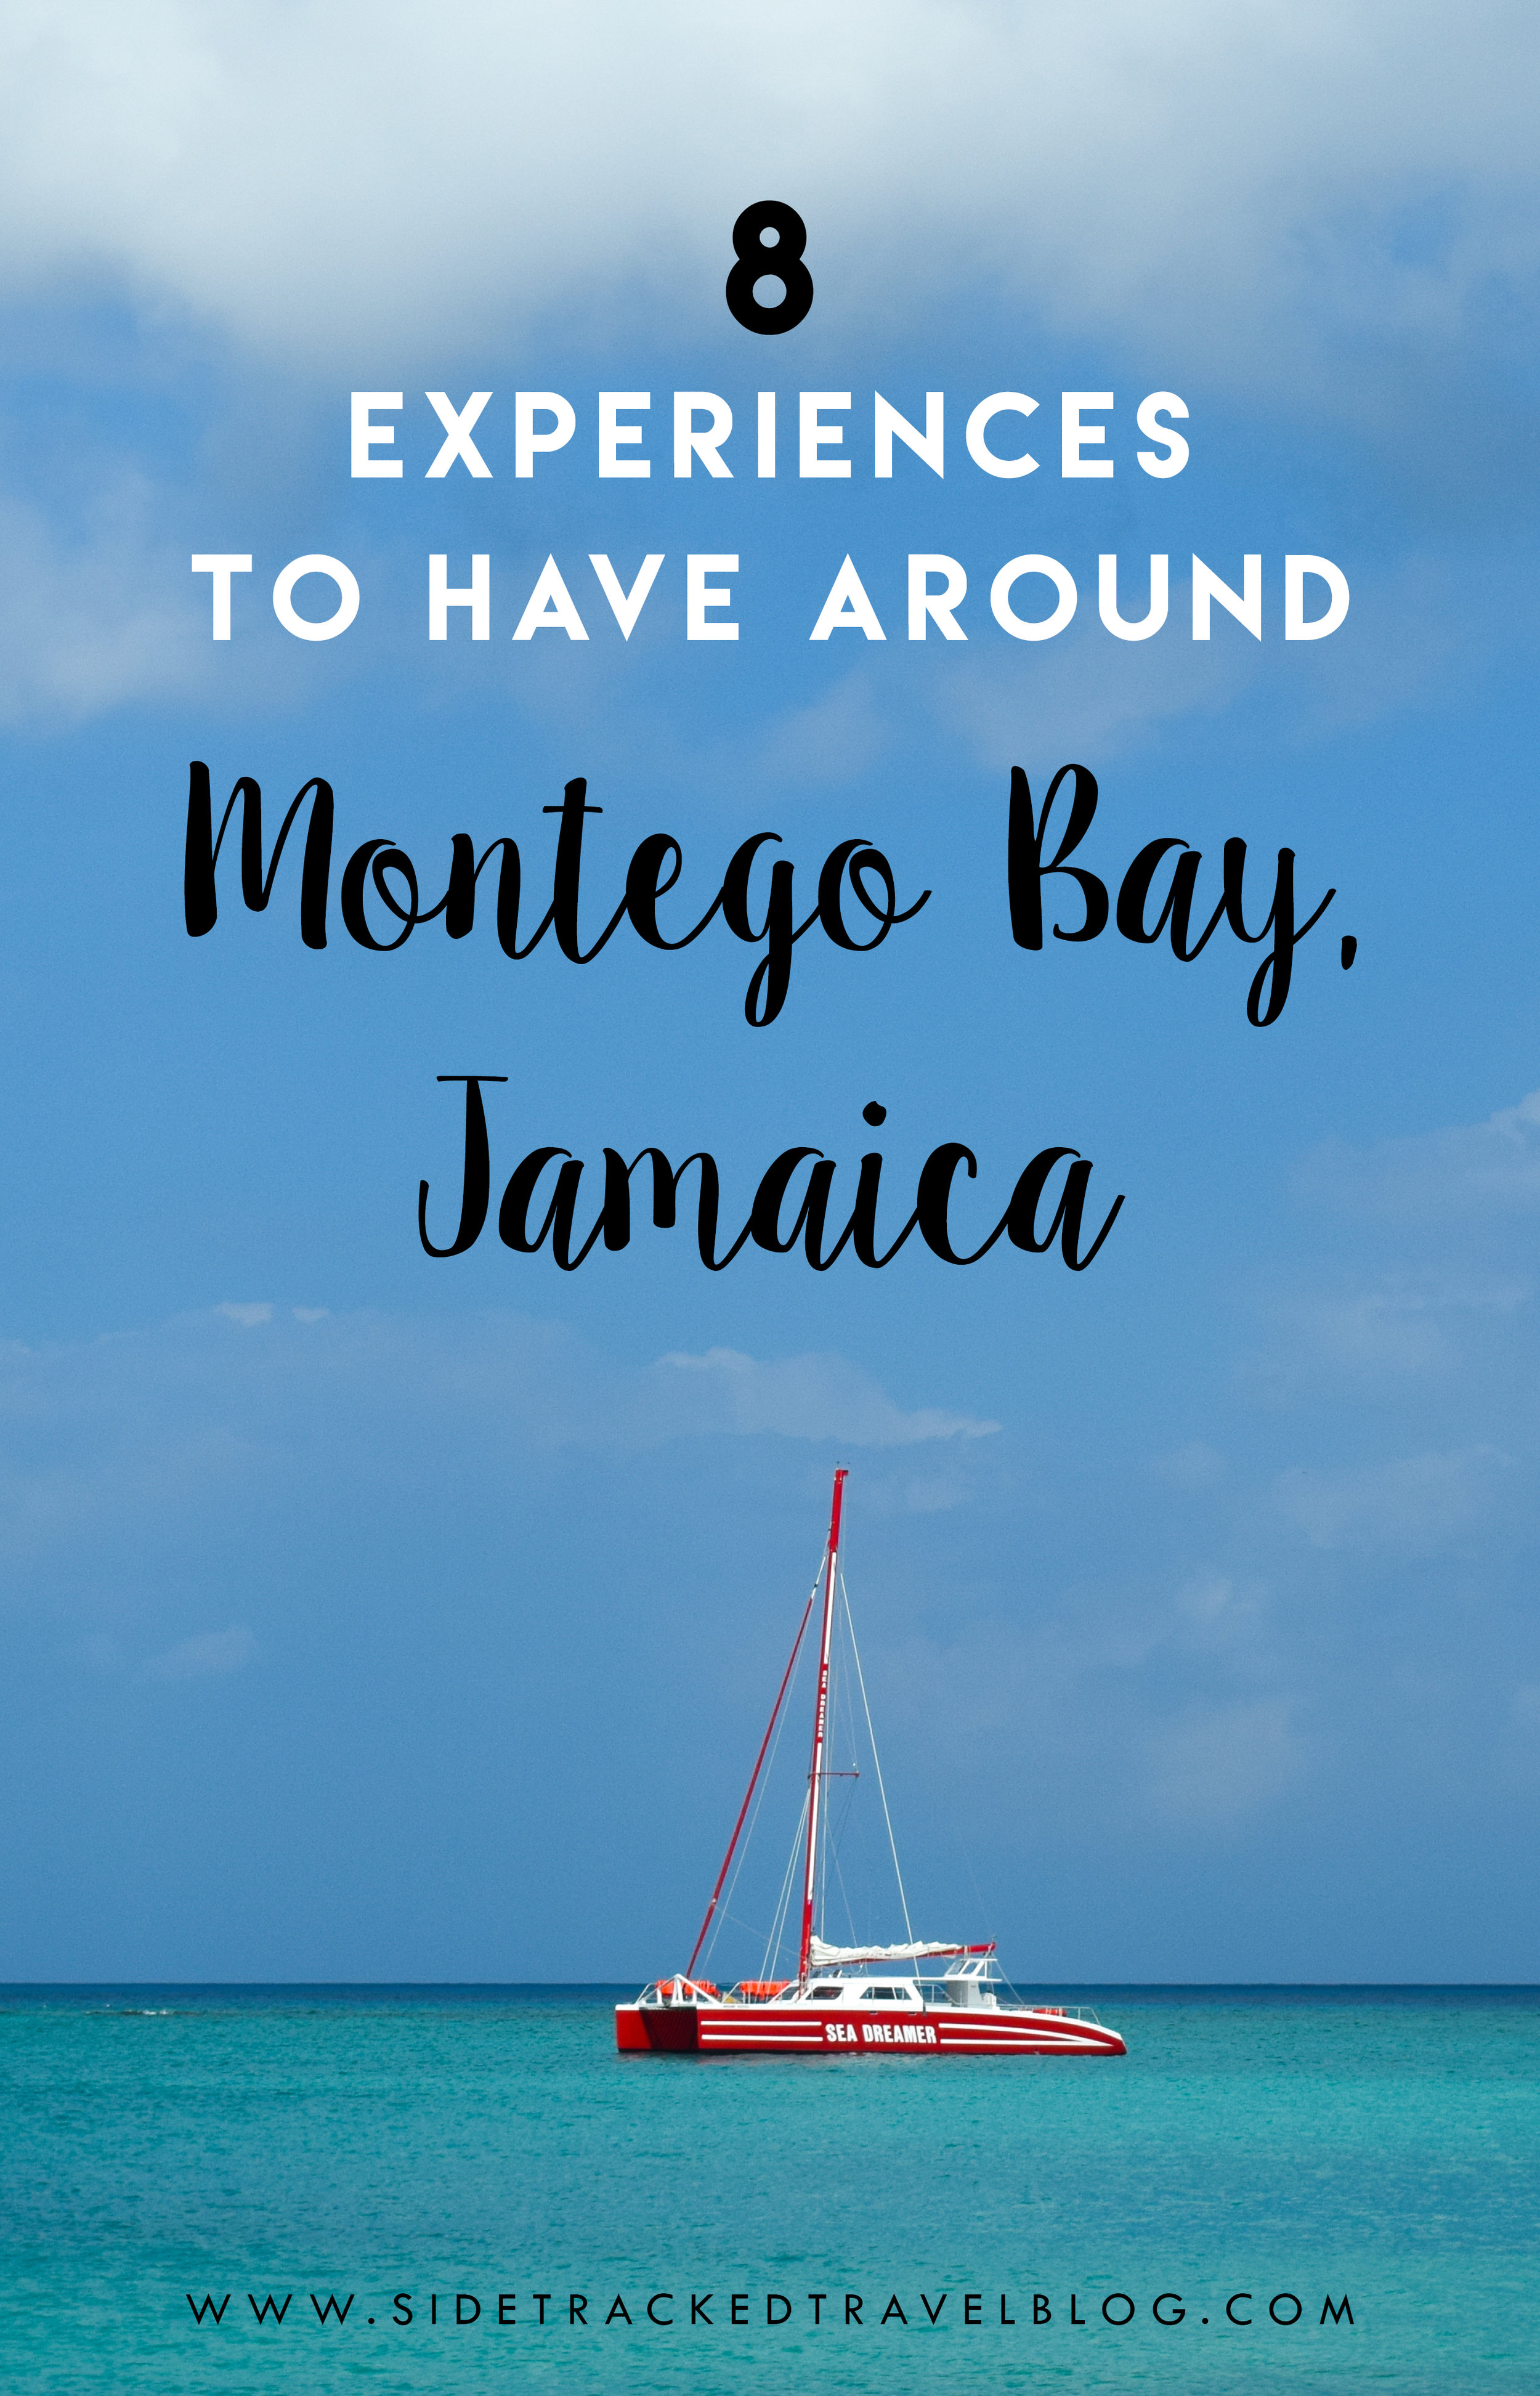 Whether it's the refreshing taste of an ice-cold Red Stripe, a bamboo raft cruise down the Martha Brae River, or that first bite of flavorful jerk chicken, Montego Bay offers memorable travel experiences unlike anywhere else in the Caribbean.